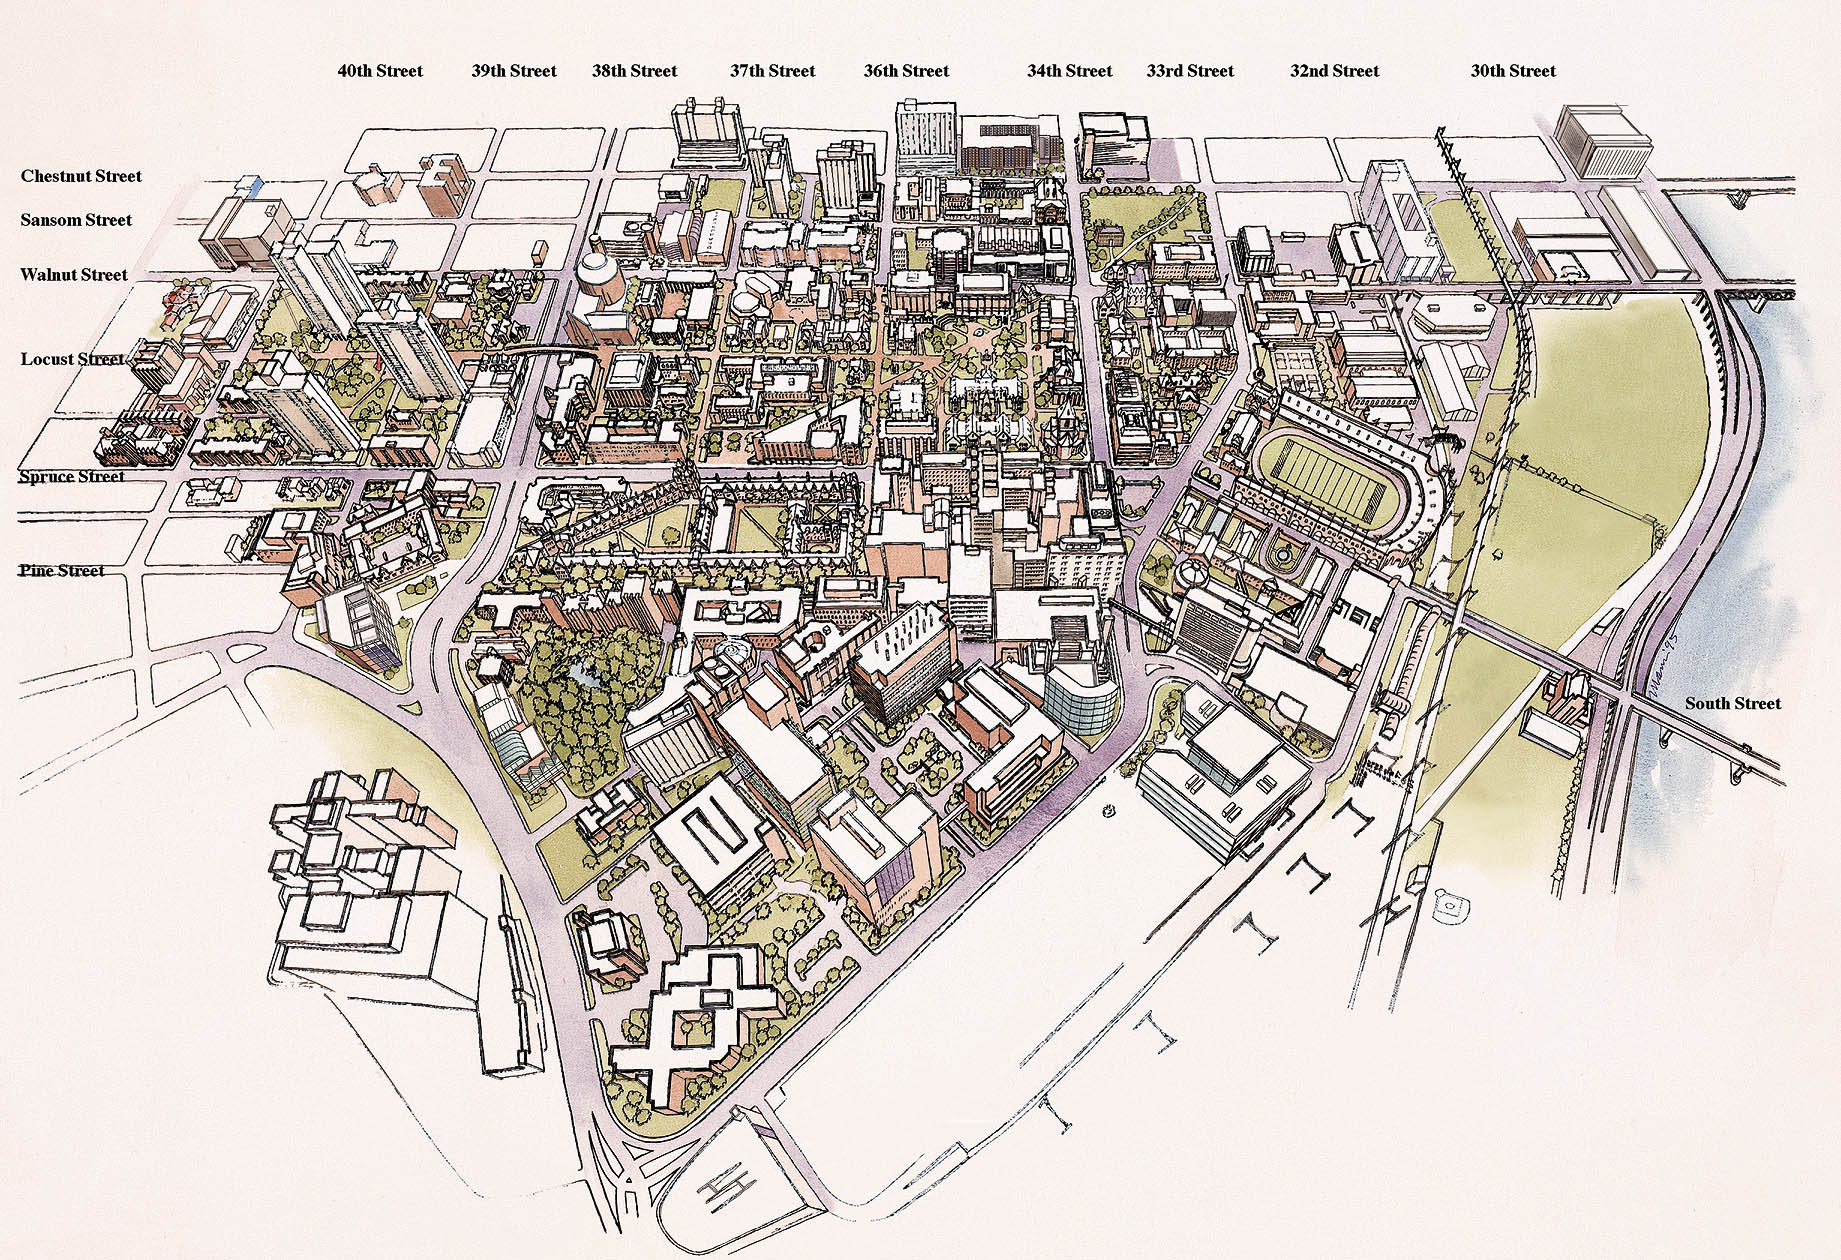 Maps Reseach Guide To The University Of Pennsylvanias Campus - Penn map state maps